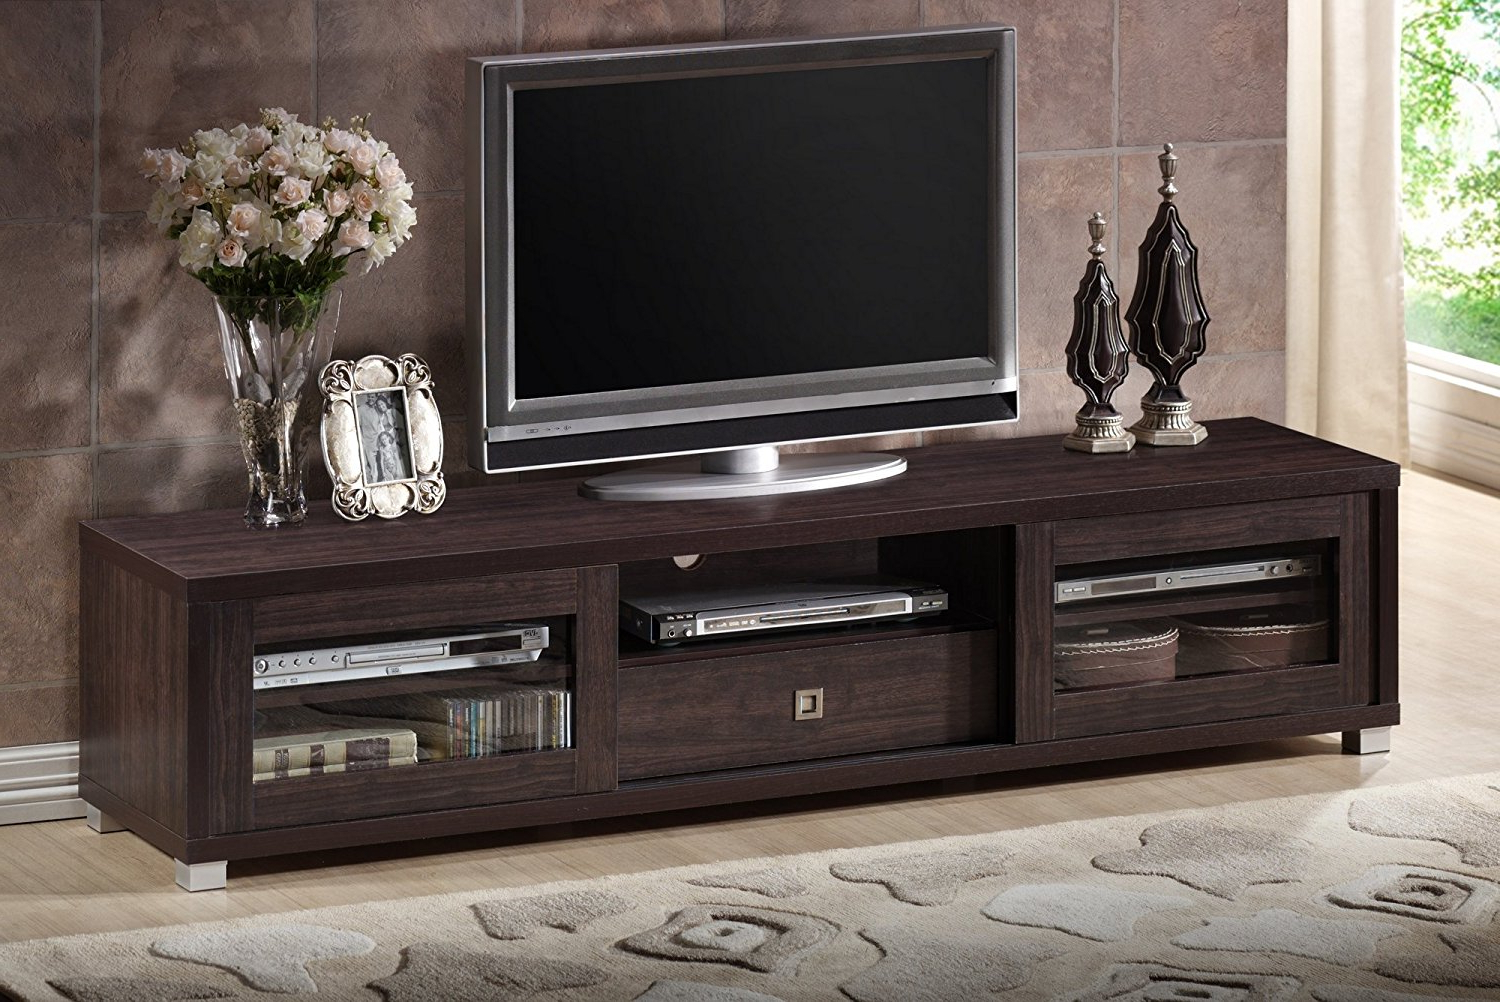 Coolest Dark Wood Tv Stand Amazon: Wholesale Interiors – Furnish With Regard To Most Recent Dark Wood Tv Stands (View 10 of 20)